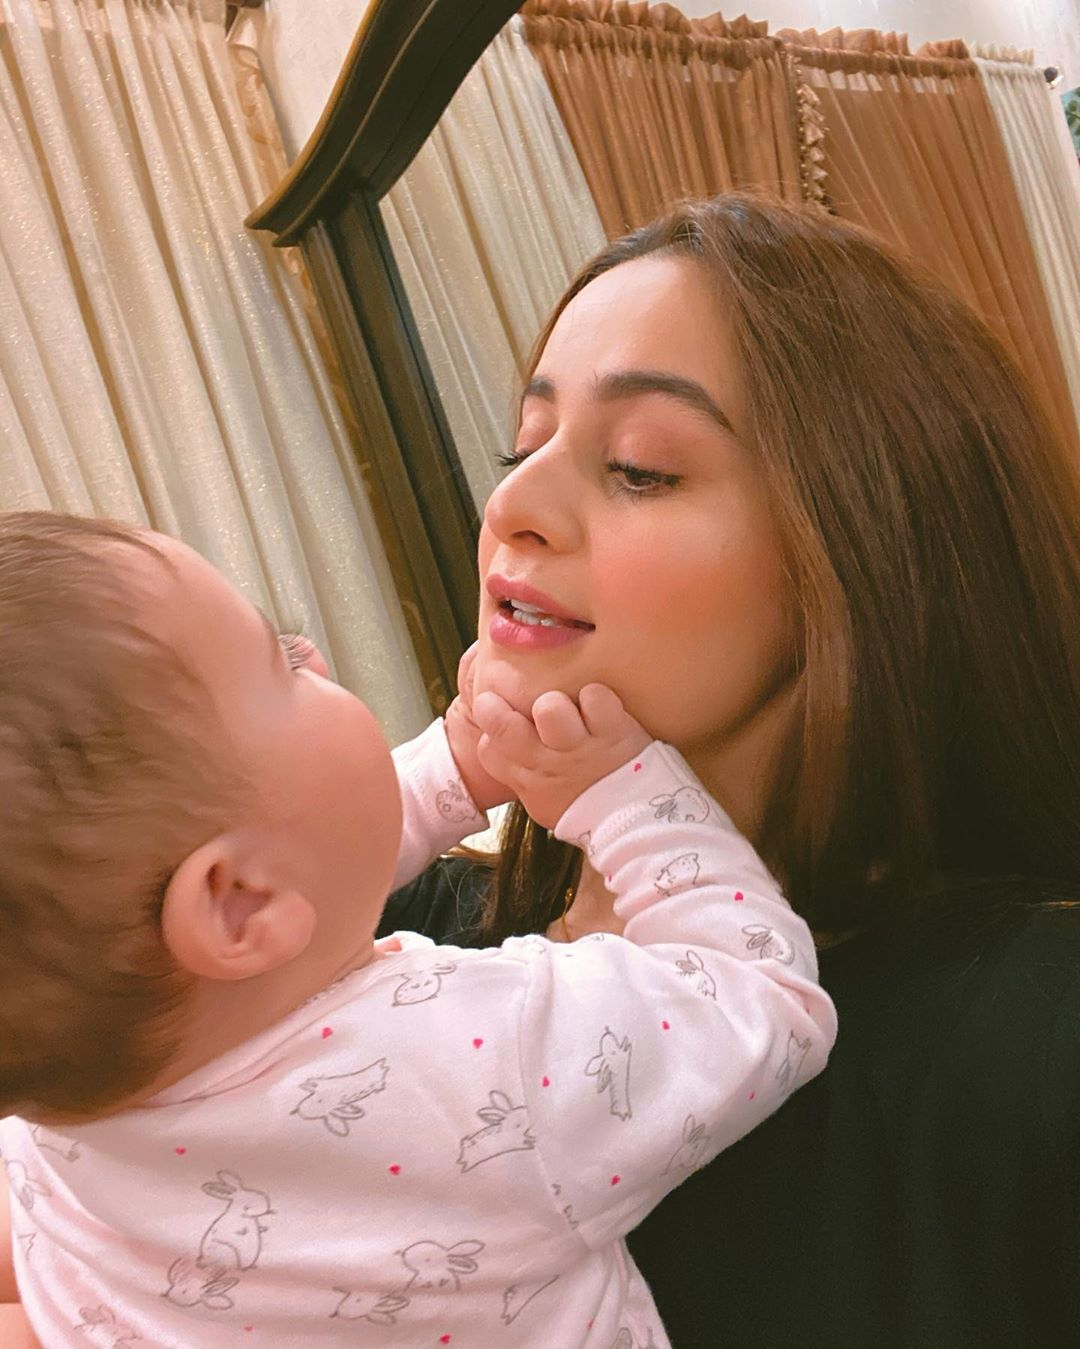 Aiman Khan and Muneeb Butt Latest Pictures and Video Call Interview